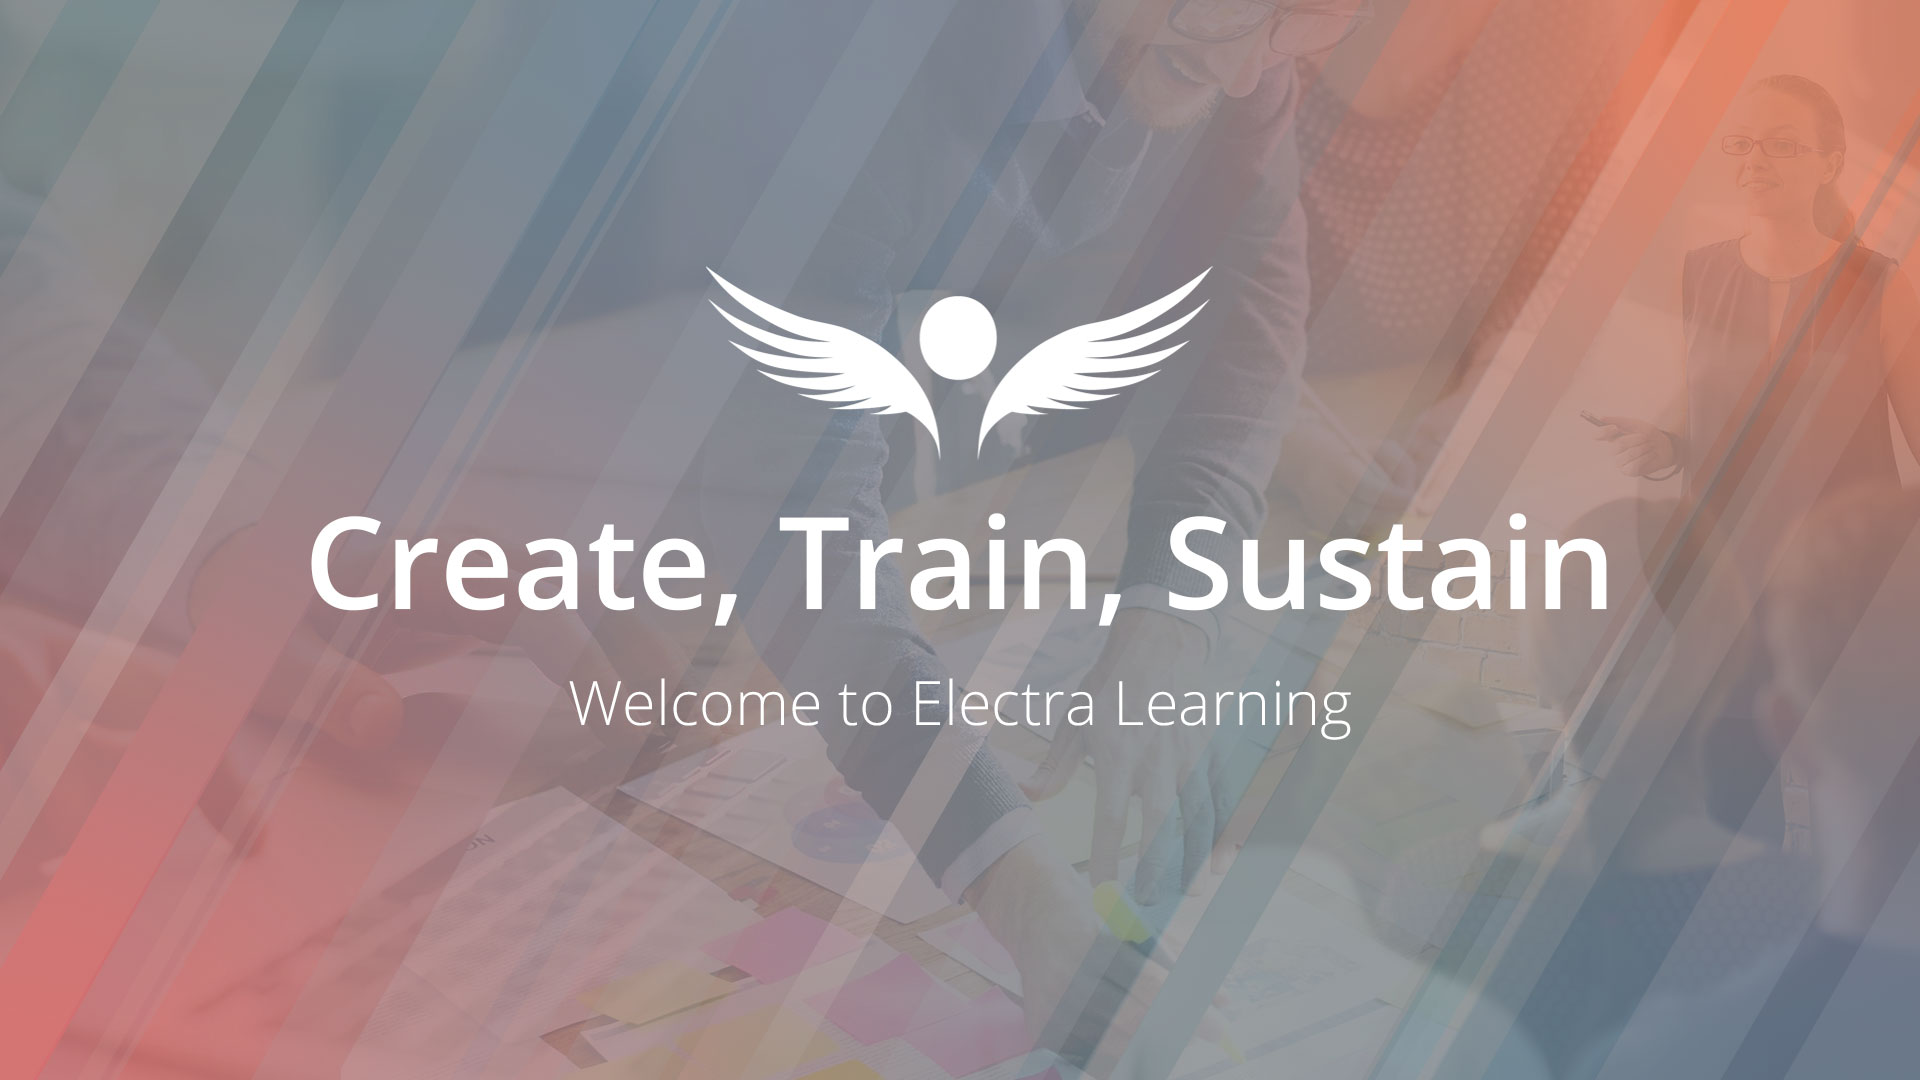 Welcome to Electra Learning